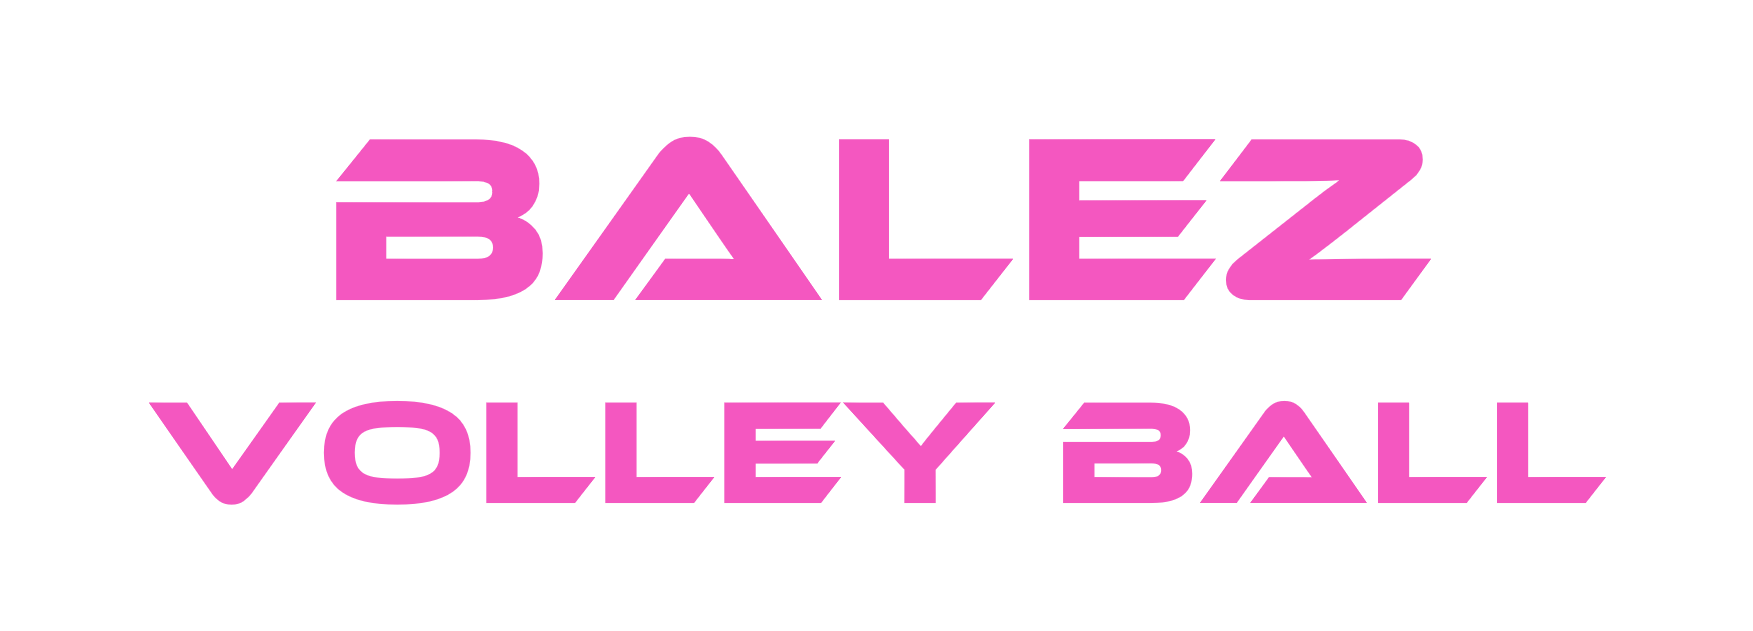 Site officiel des BALEZ o Volley